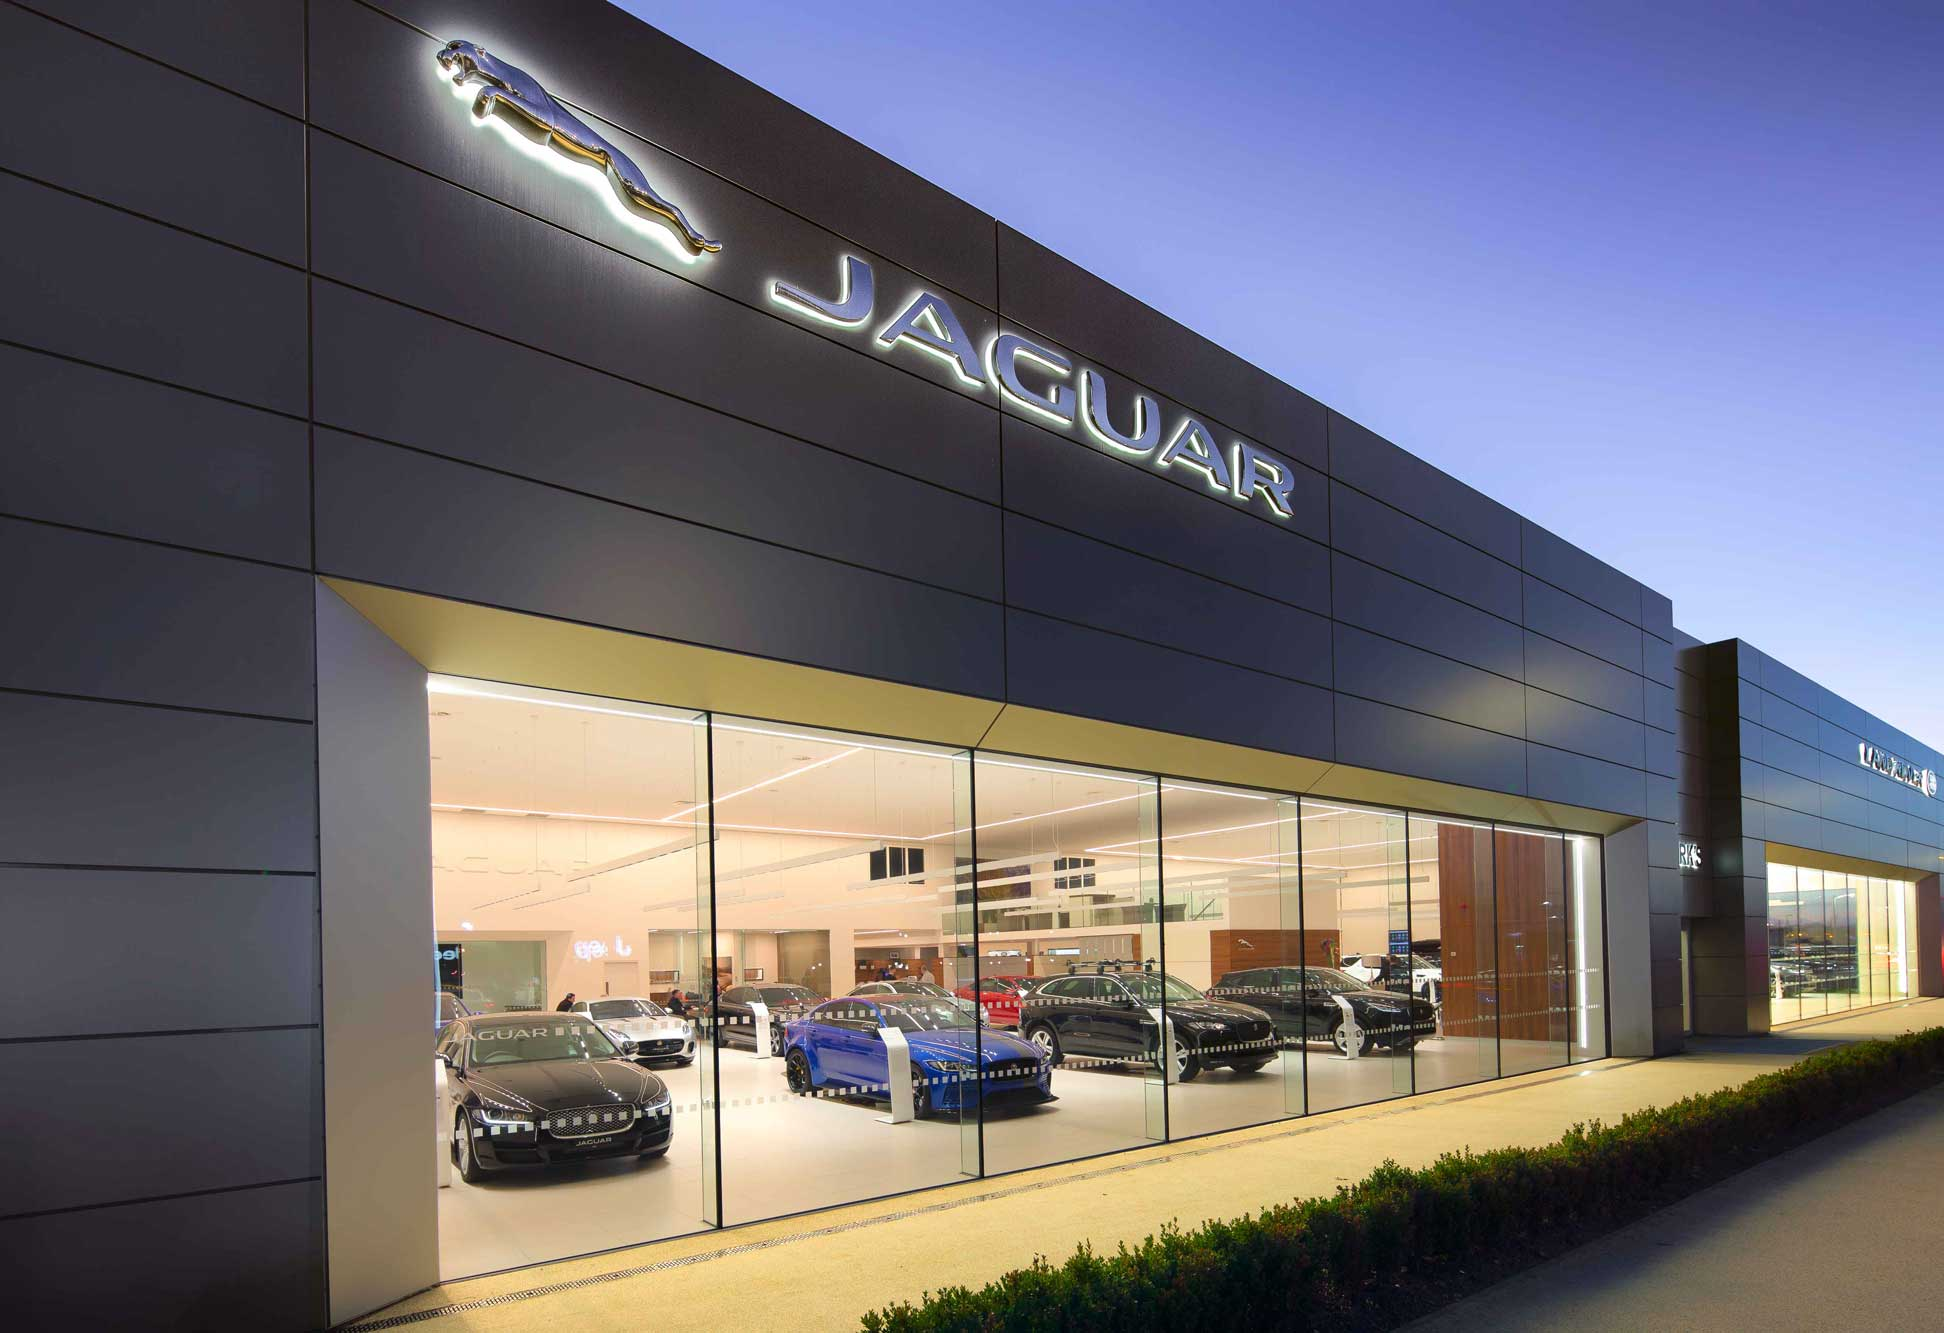 Parks Motor Group Jaguar Showroom, Heath Road, Ayr.  Photography by James Thompson.